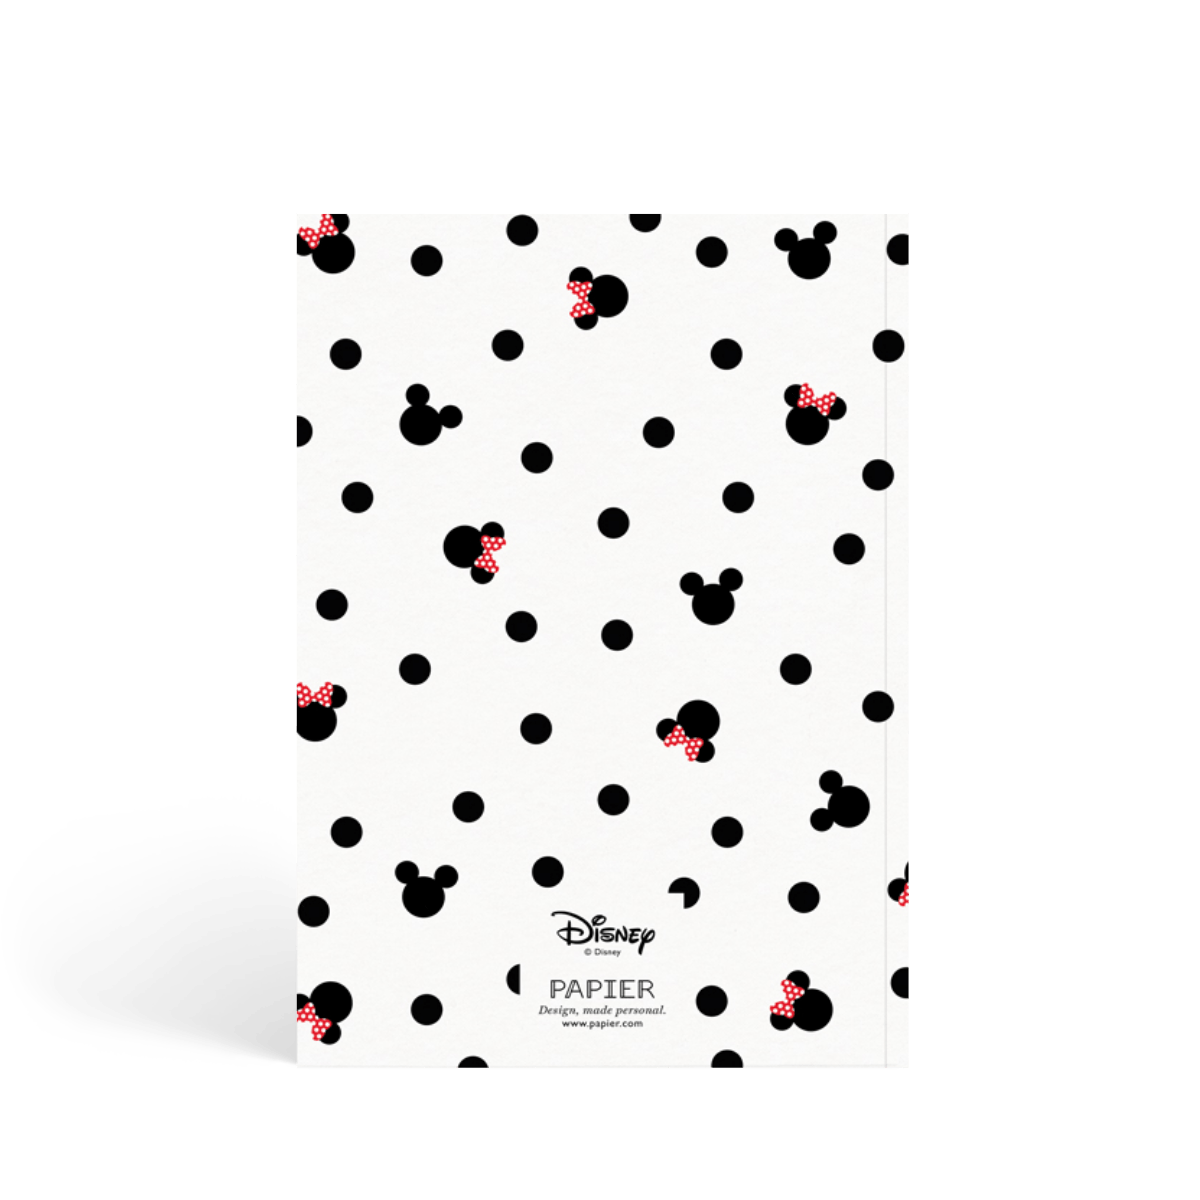 Https%3a%2f%2fwww.papier.com%2fproduct image%2f55824%2f5%2fmickey minnie mouse 13406 back 1542299842.png?ixlib=rb 1.1